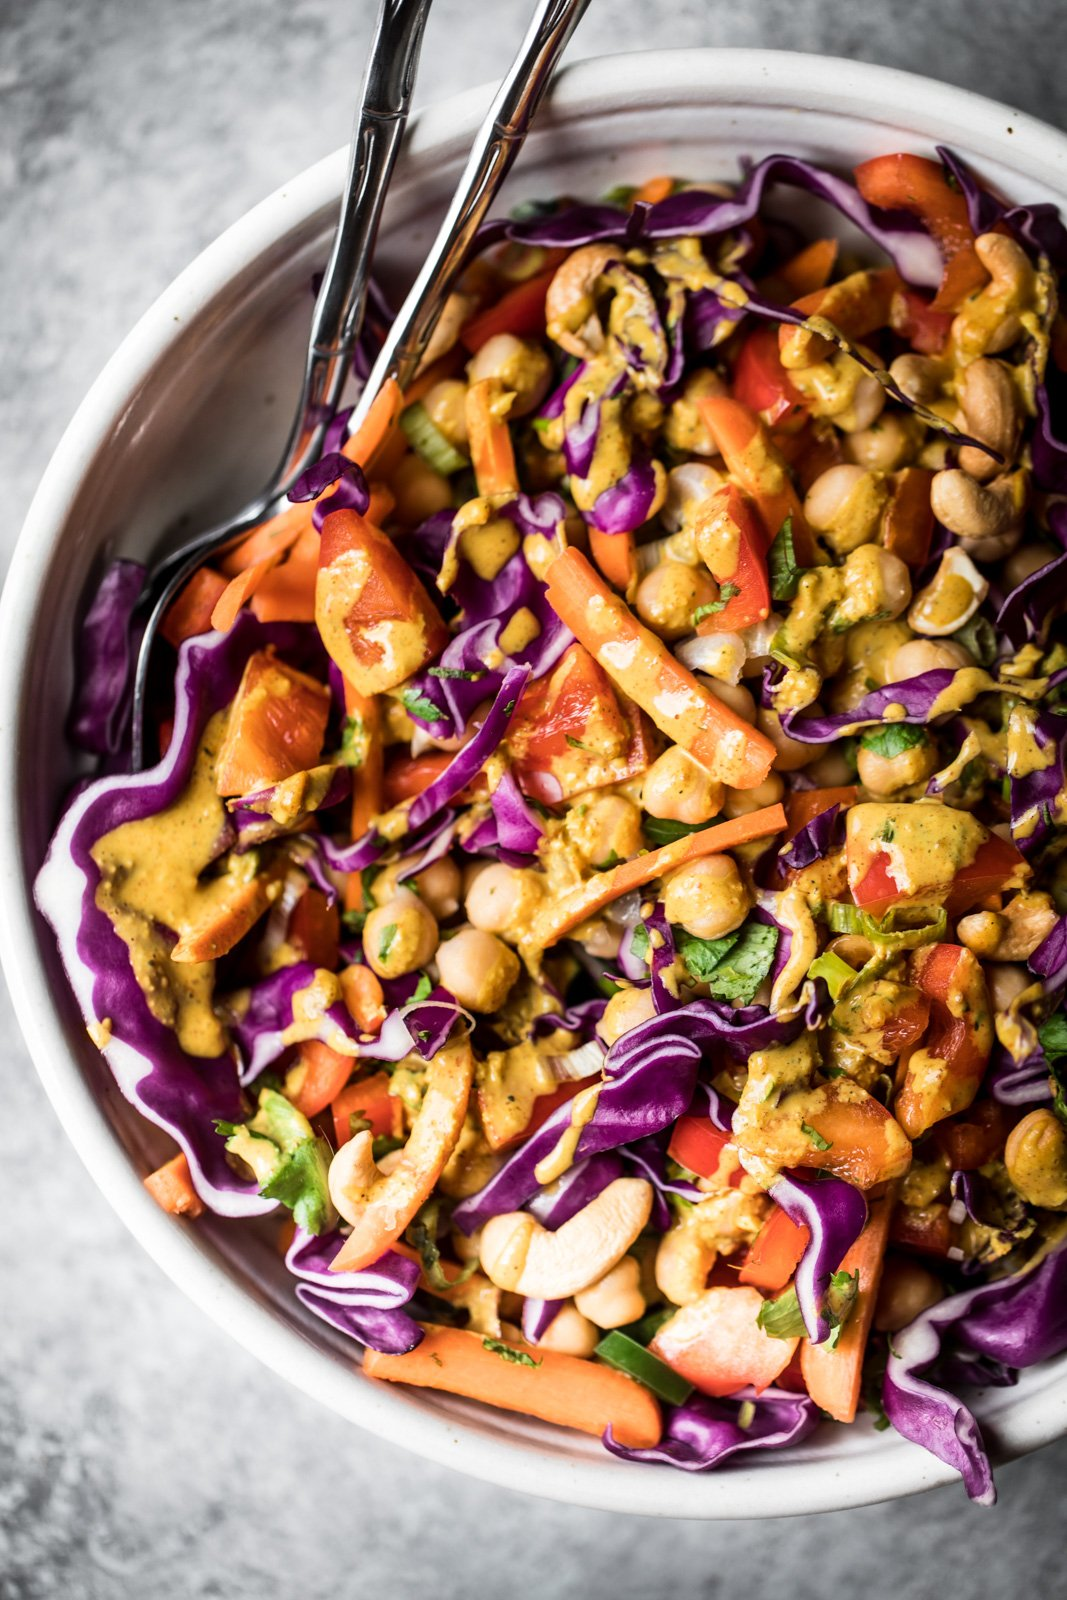 Cozy curry recipes: thai chickpea salad with curry dressing in a bowl